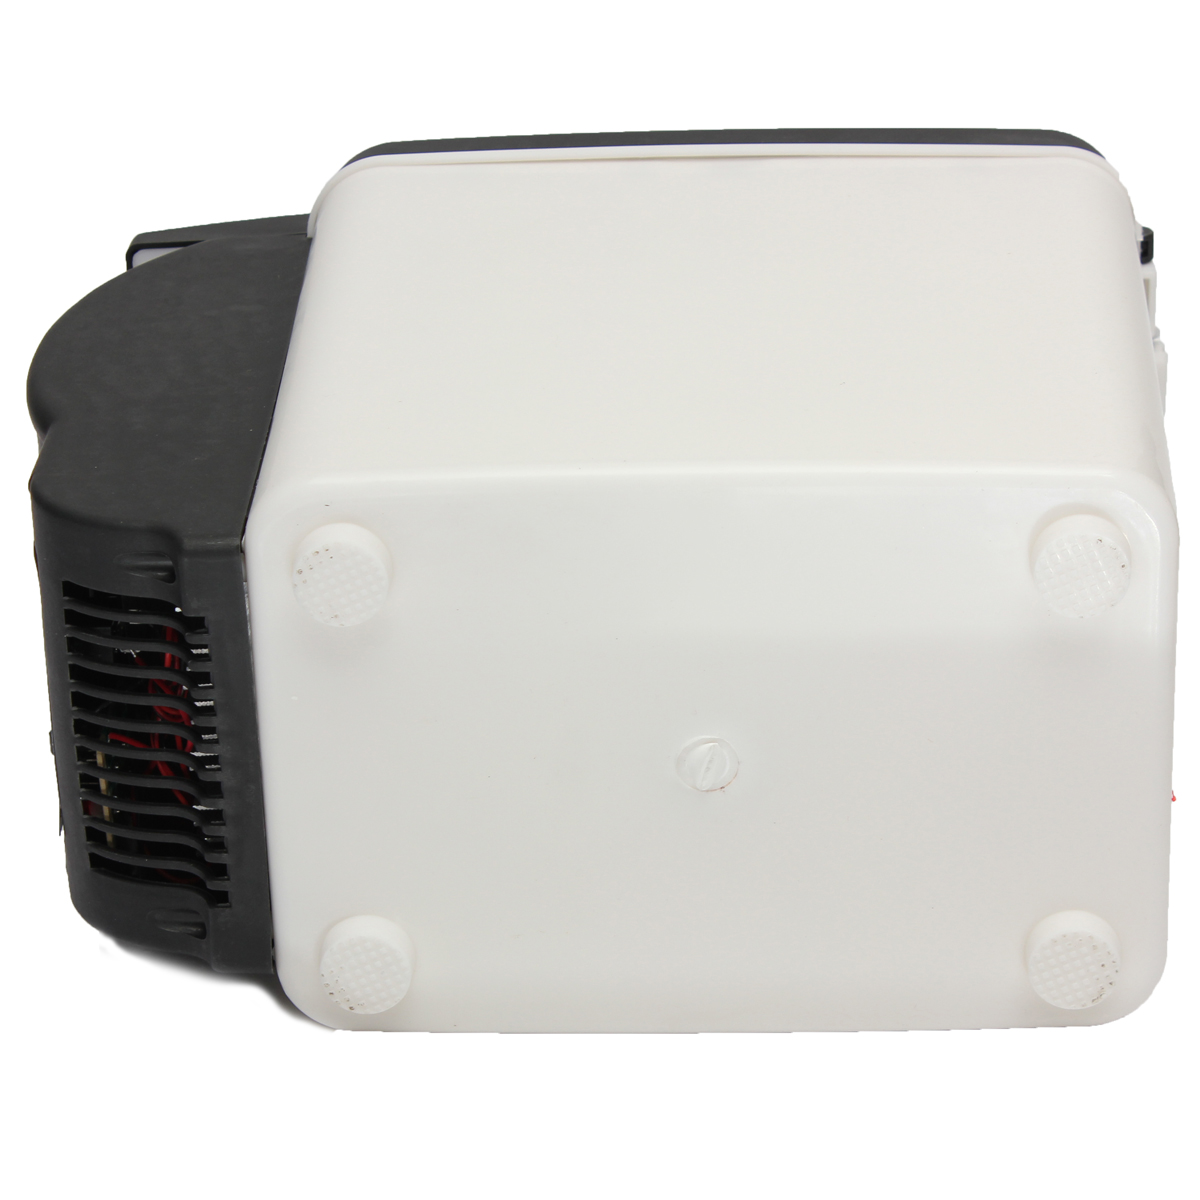 #59443D Car Fridge Mini Refrigerator Travel Portable Cool Cooler  Best 5913 Portable Heater And Cooler photos with 1200x1200 px on helpvideos.info - Air Conditioners, Air Coolers and more